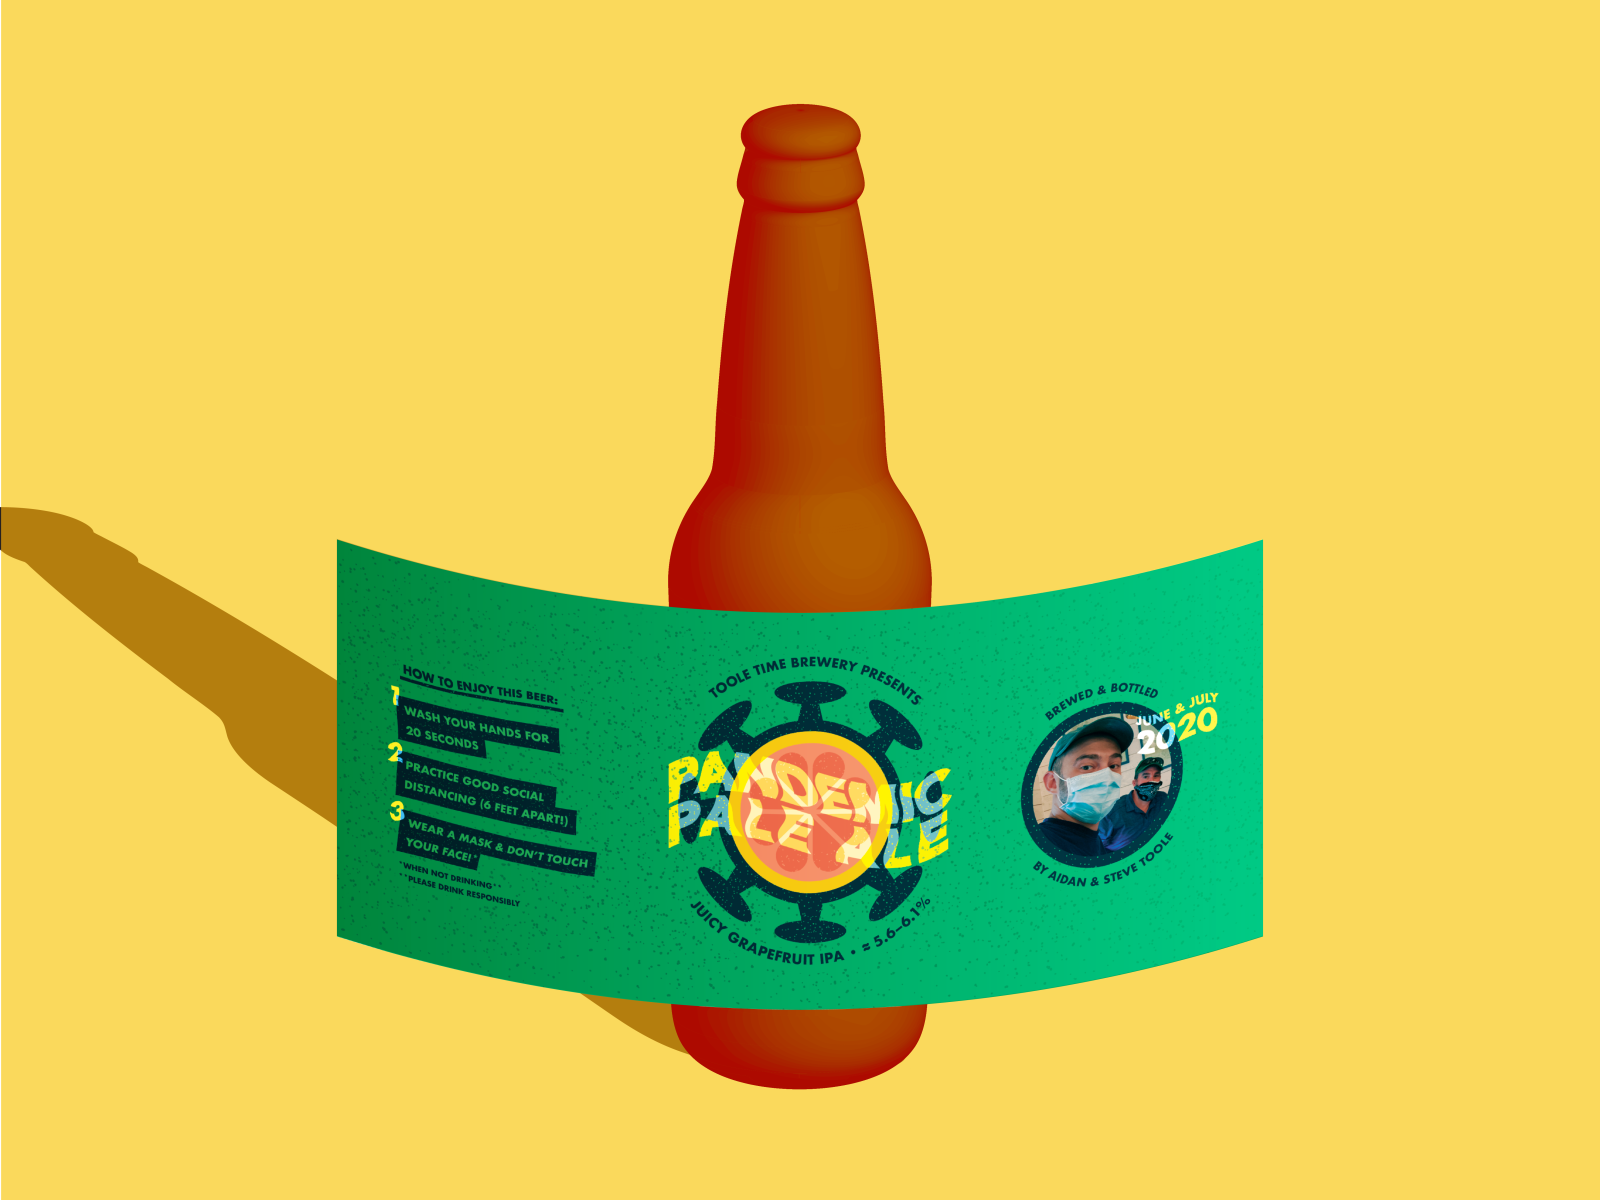 illustration of beer bottle with label